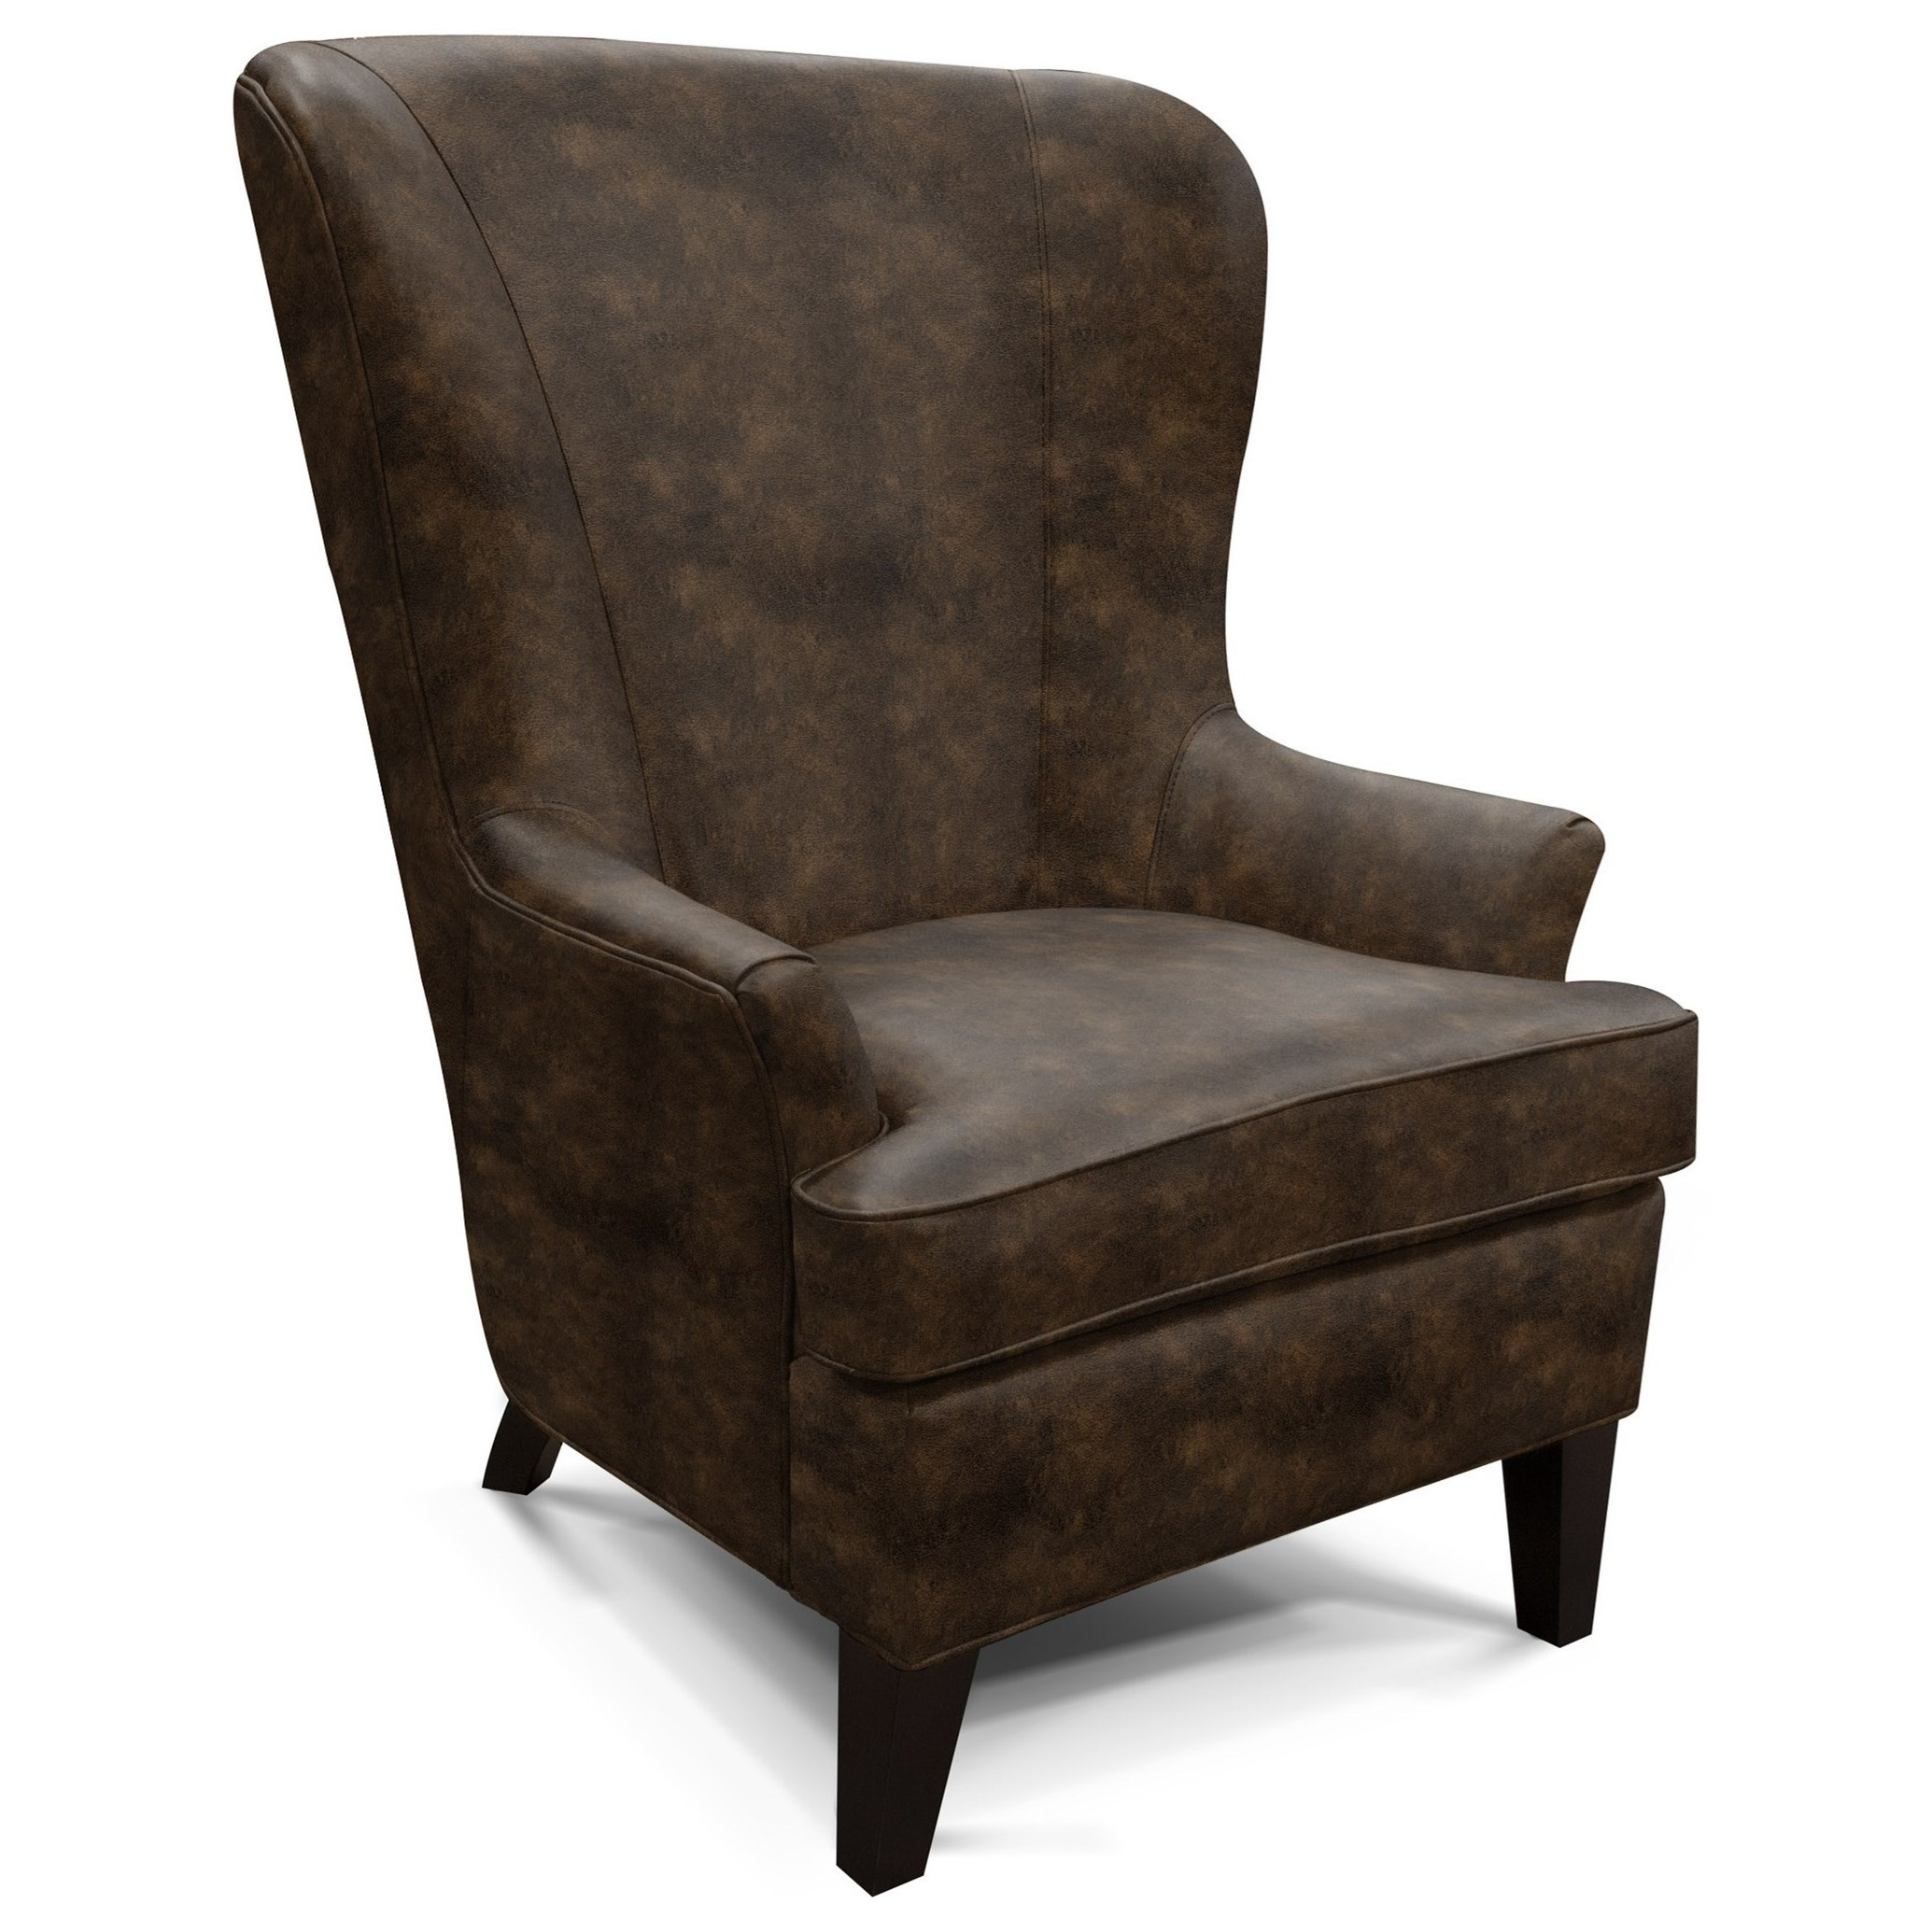 Saylor Wing Chair by England at Gill Brothers Furniture